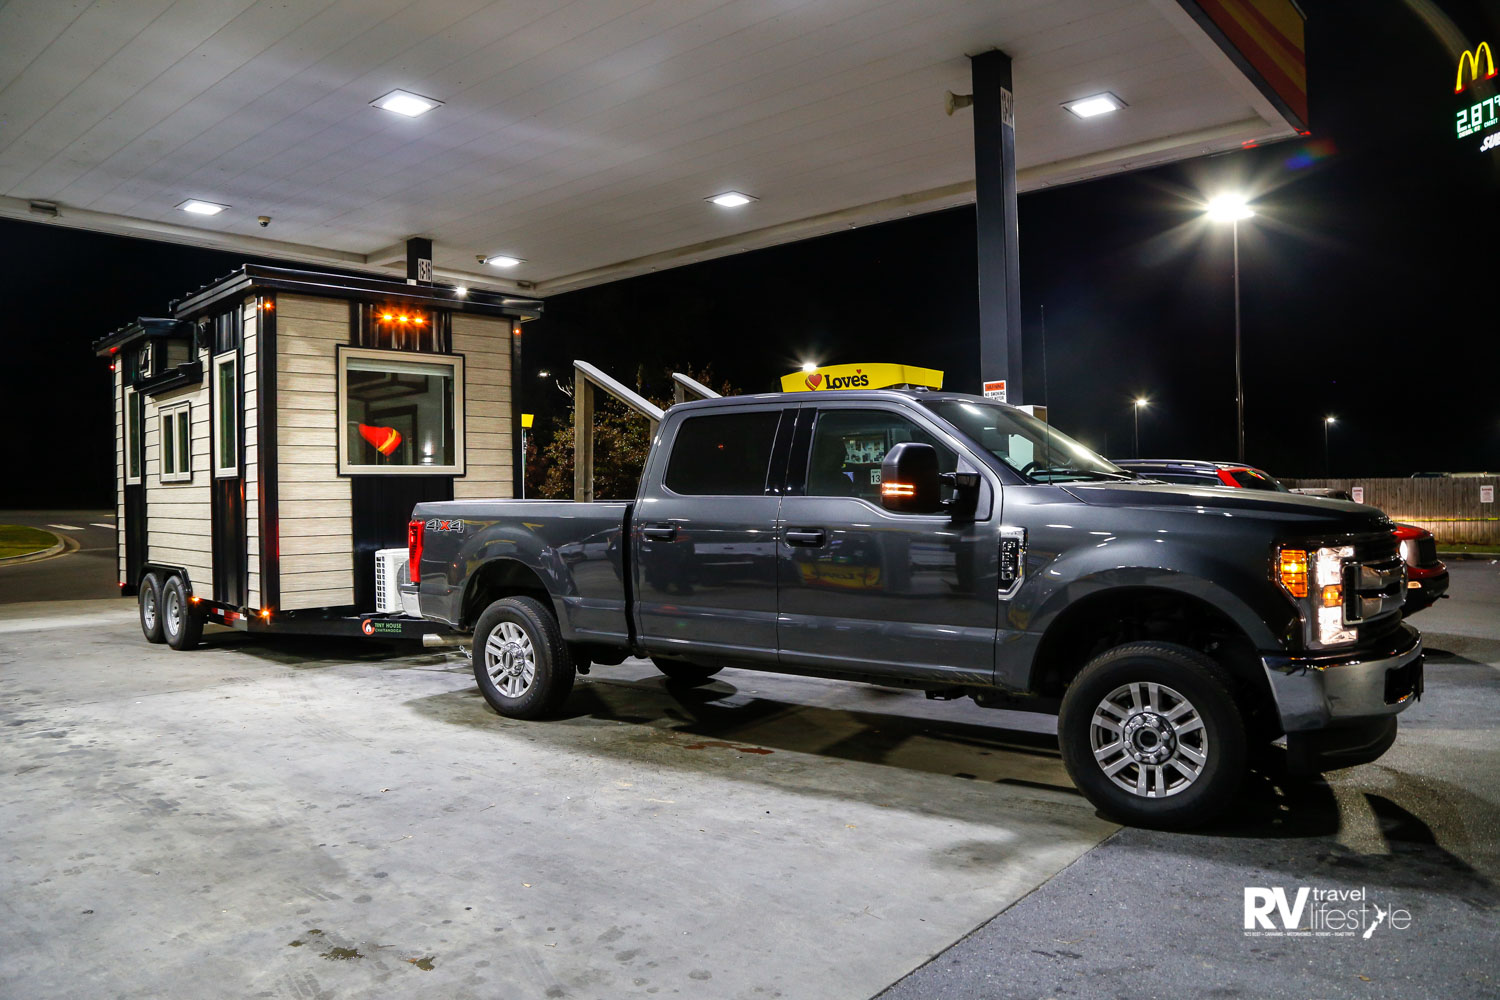 Will we be seeing more tiny homes on the road?